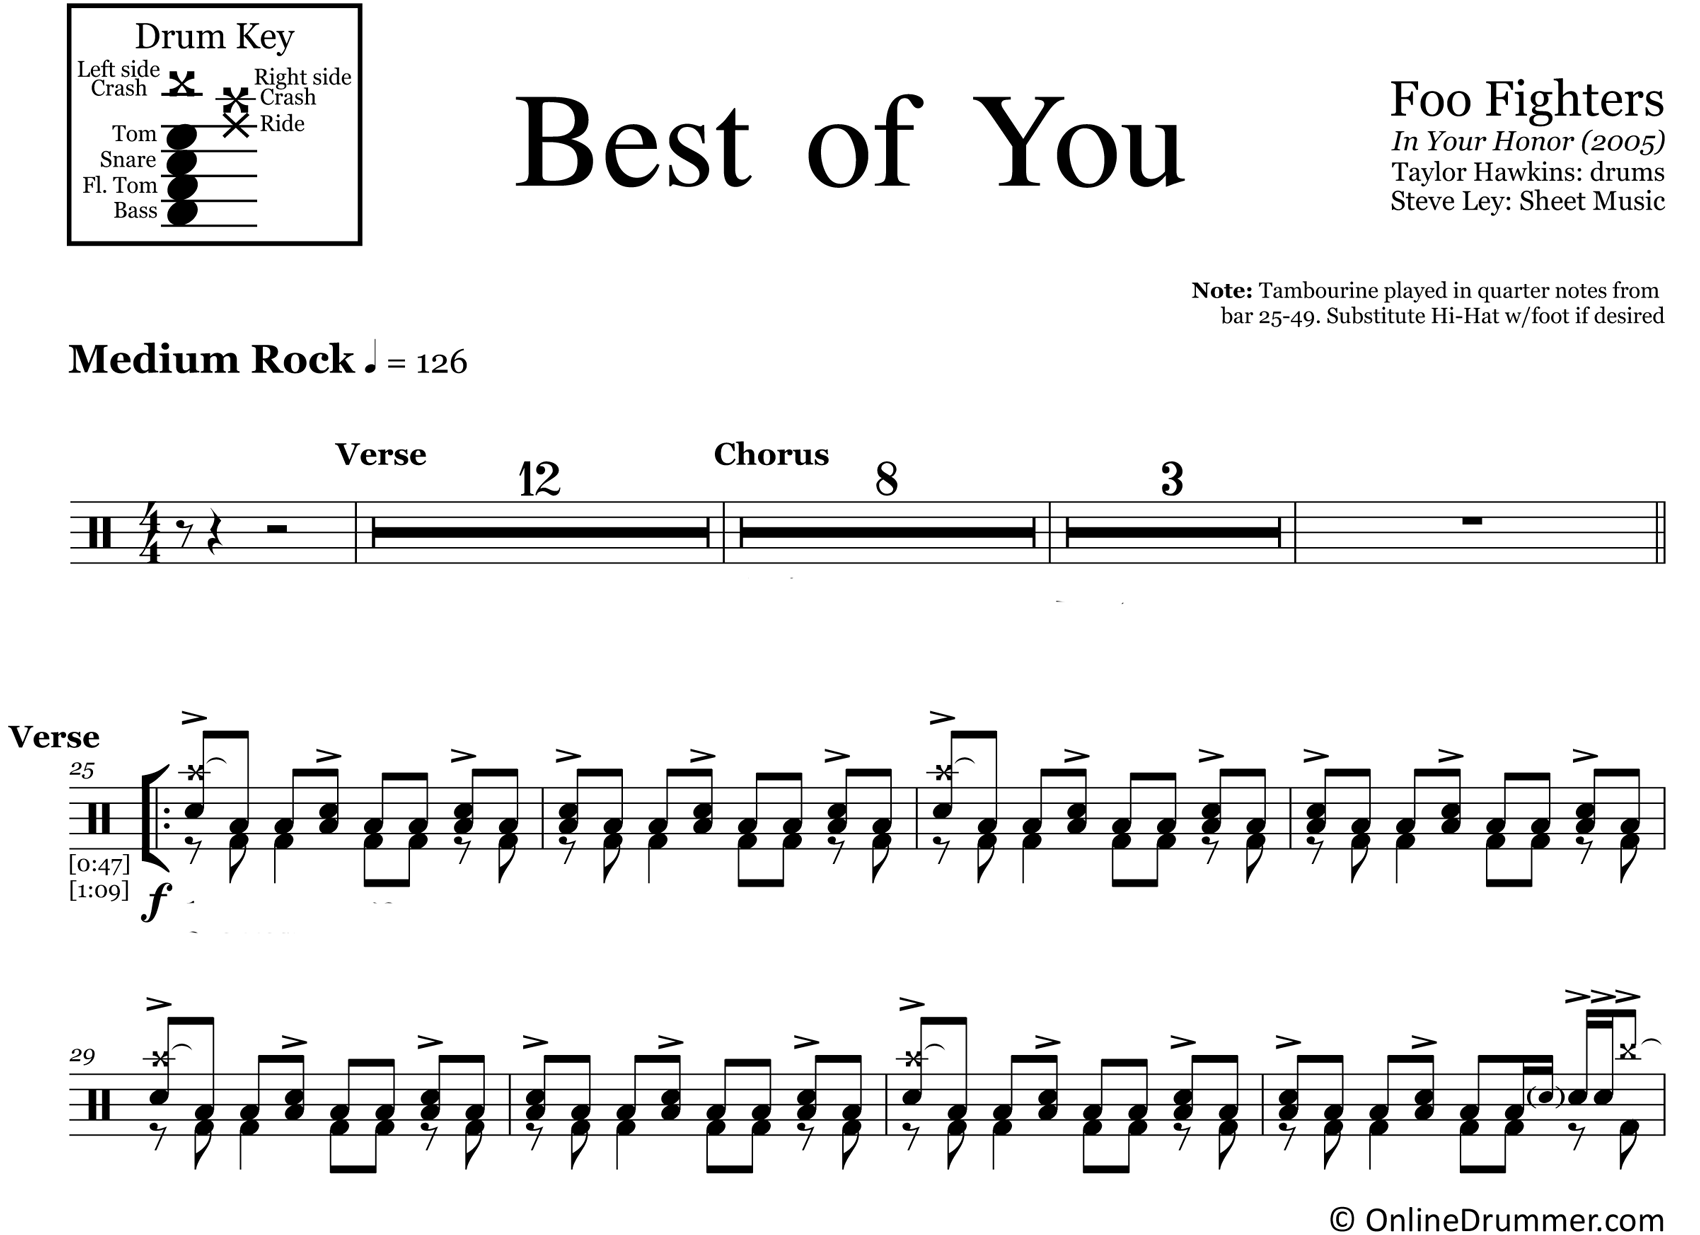 Best of You - Foo Fighters - Drum Sheet Music